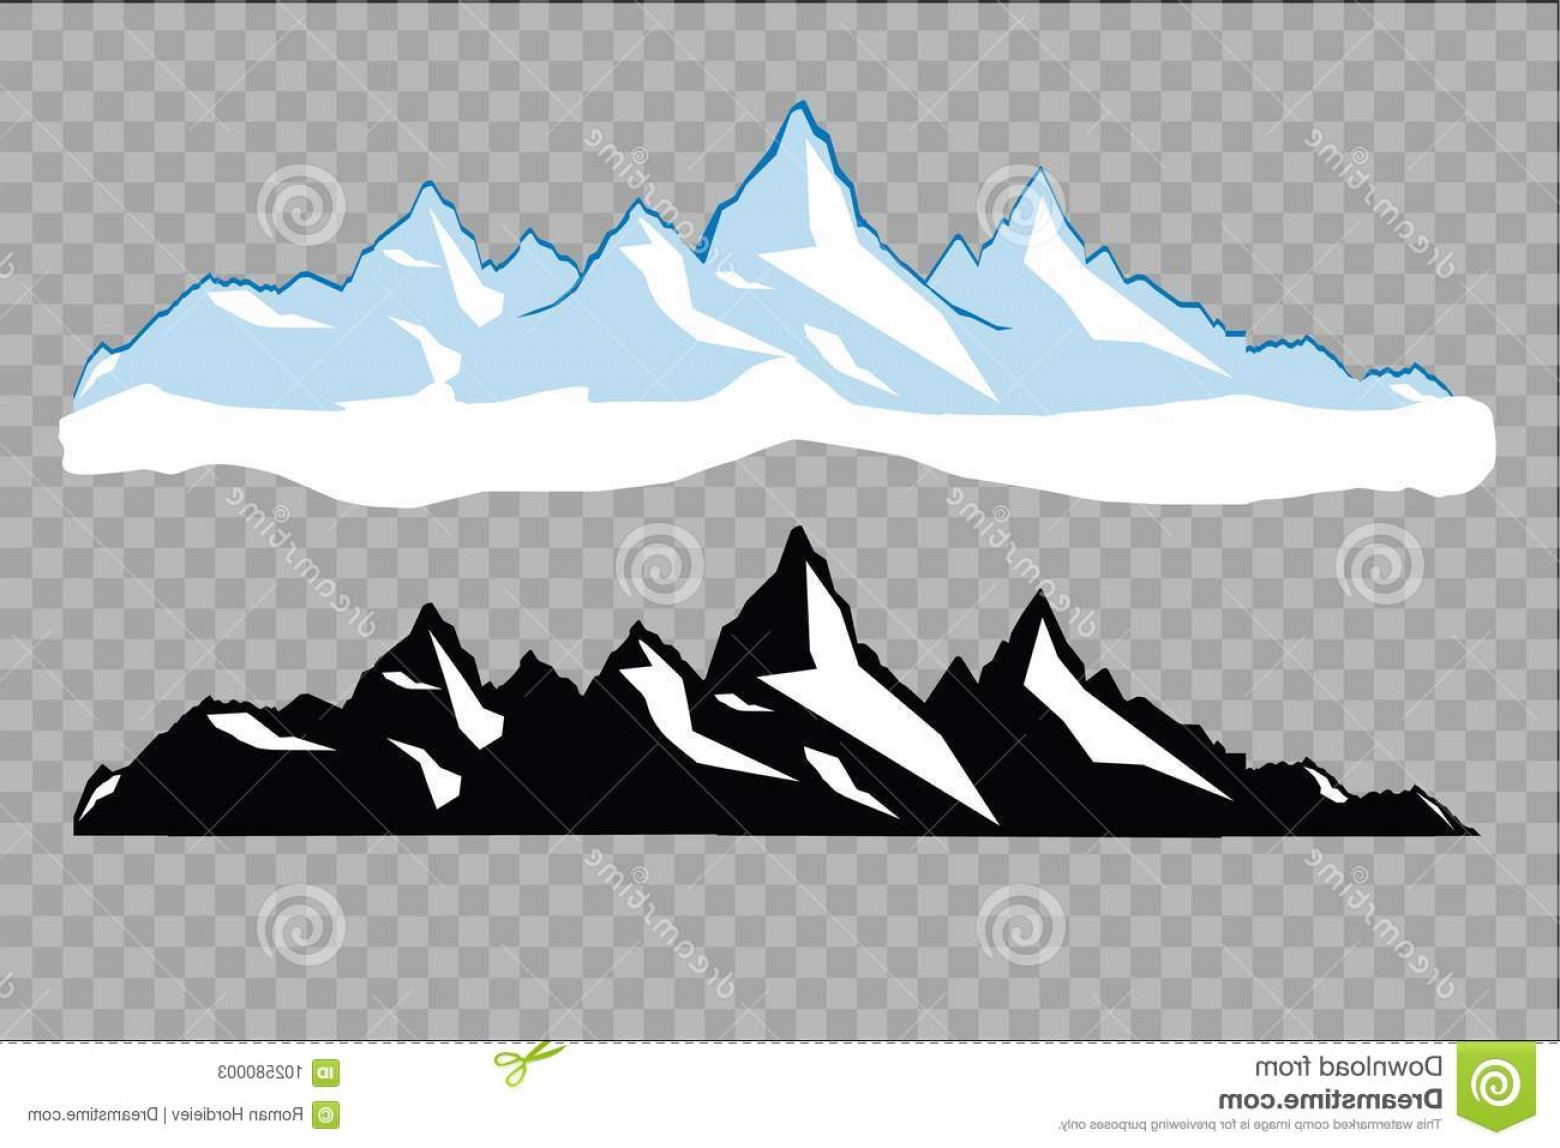 White Mountain Silhouette Vector Free: Set Black White Mountain Silhouettes Background Border Rocky Mountains Vector Illustration Image